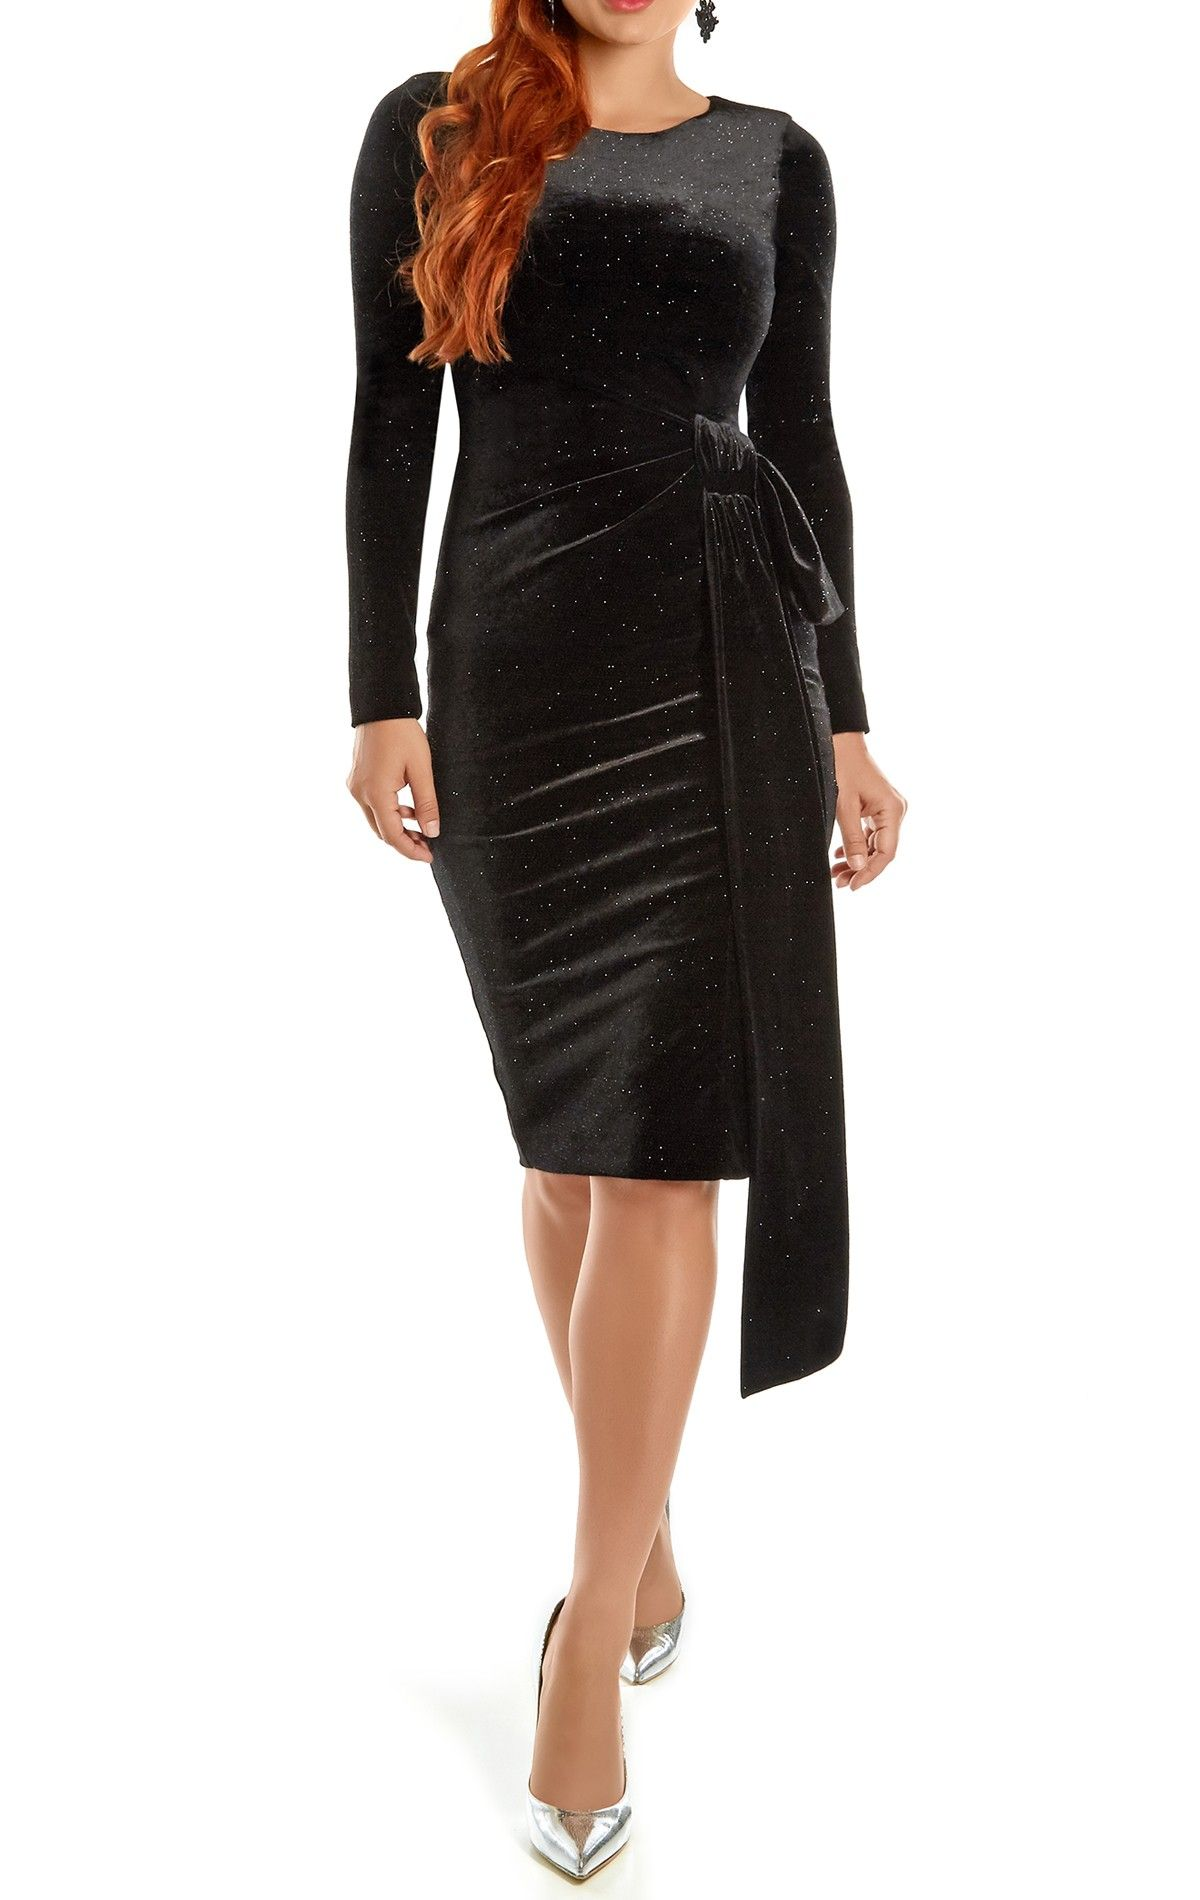 fffc6e8778808 This sleek and stylish dress is a party must have for the bigger busted  woman.